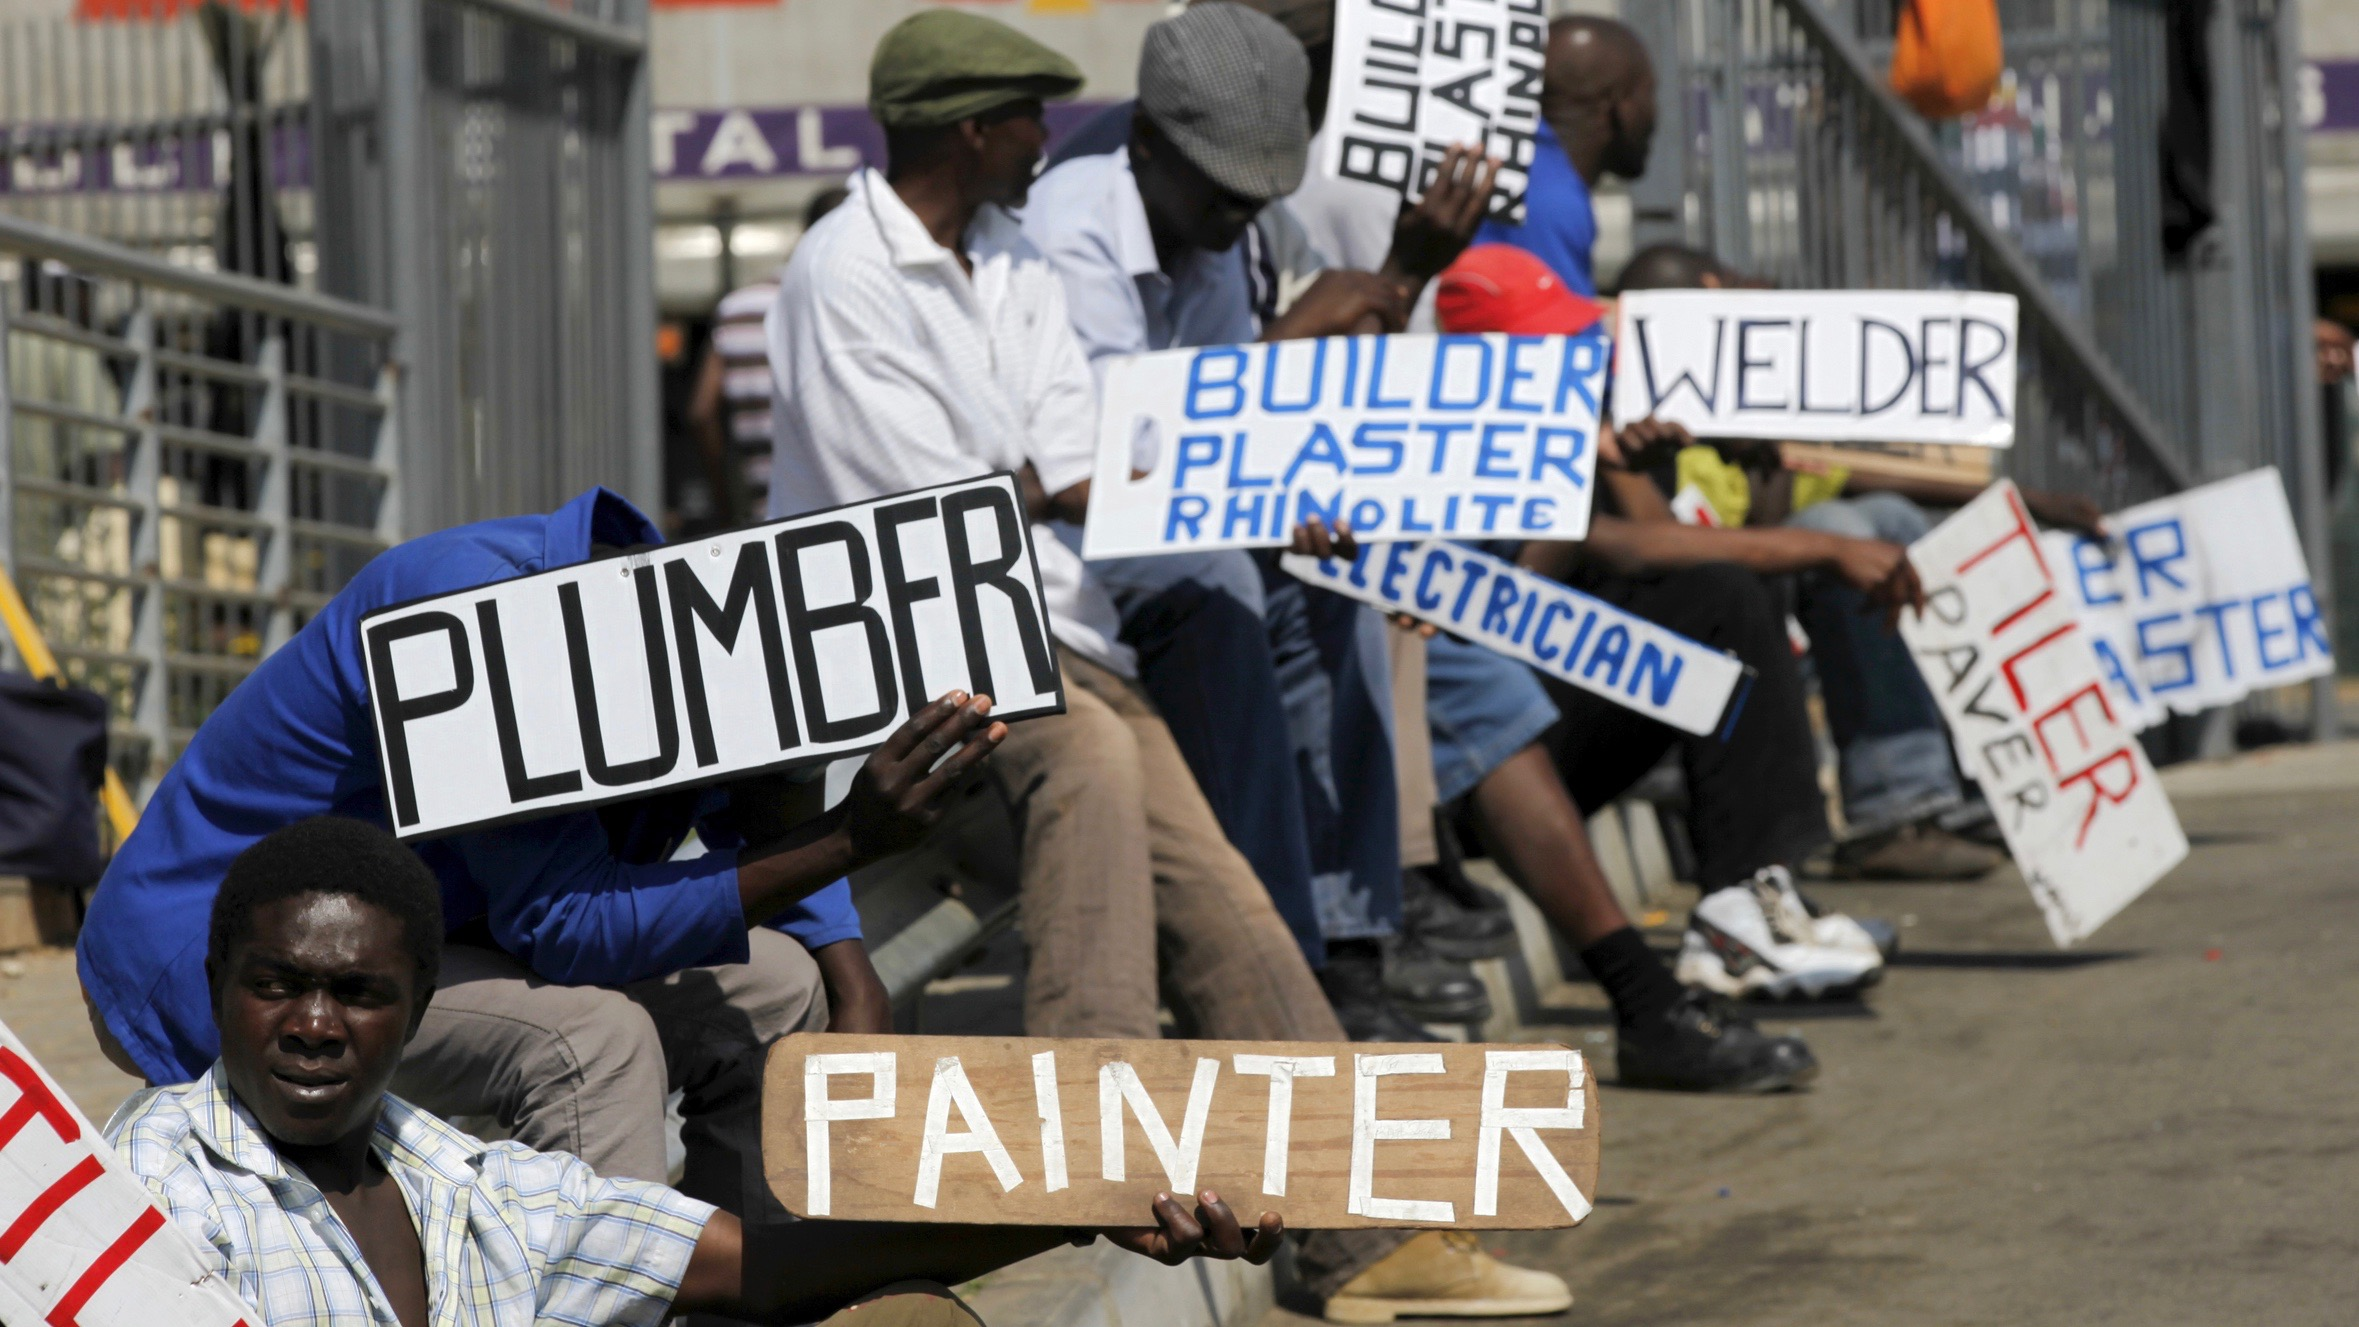 Men hold placards offering temporal employment services in Glenvista, south of Johannesburg, October 7, 2010.